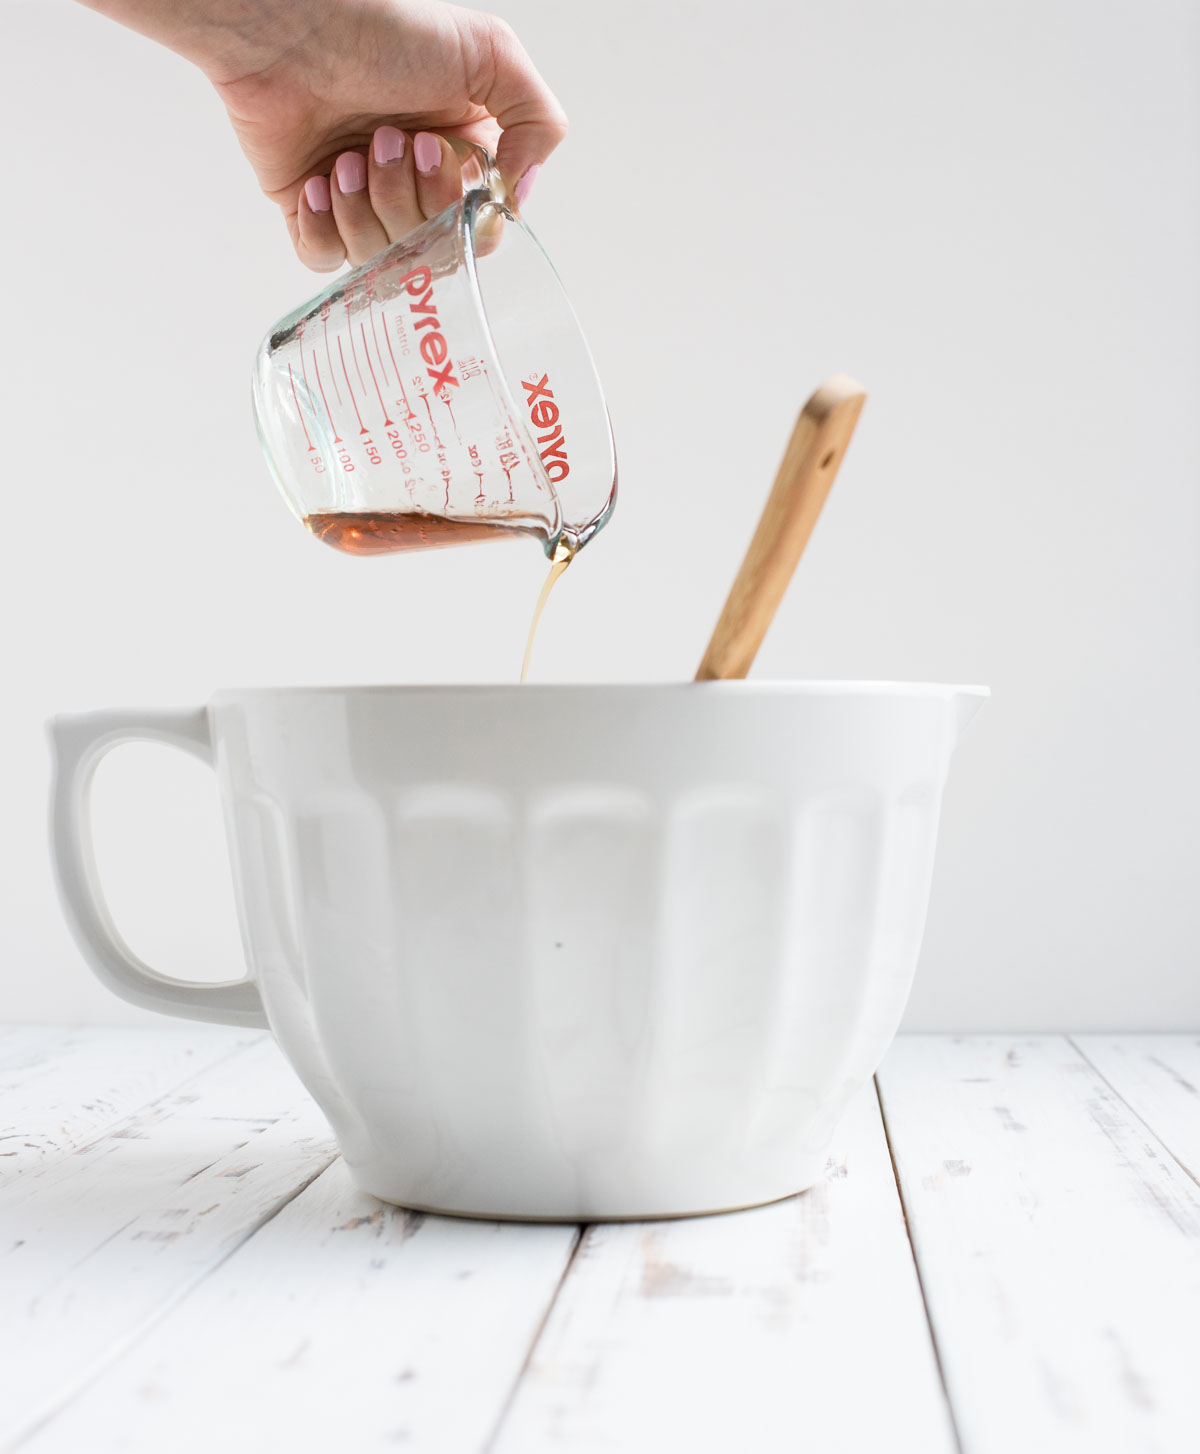 maple syrup being pulled into a mixing bowl